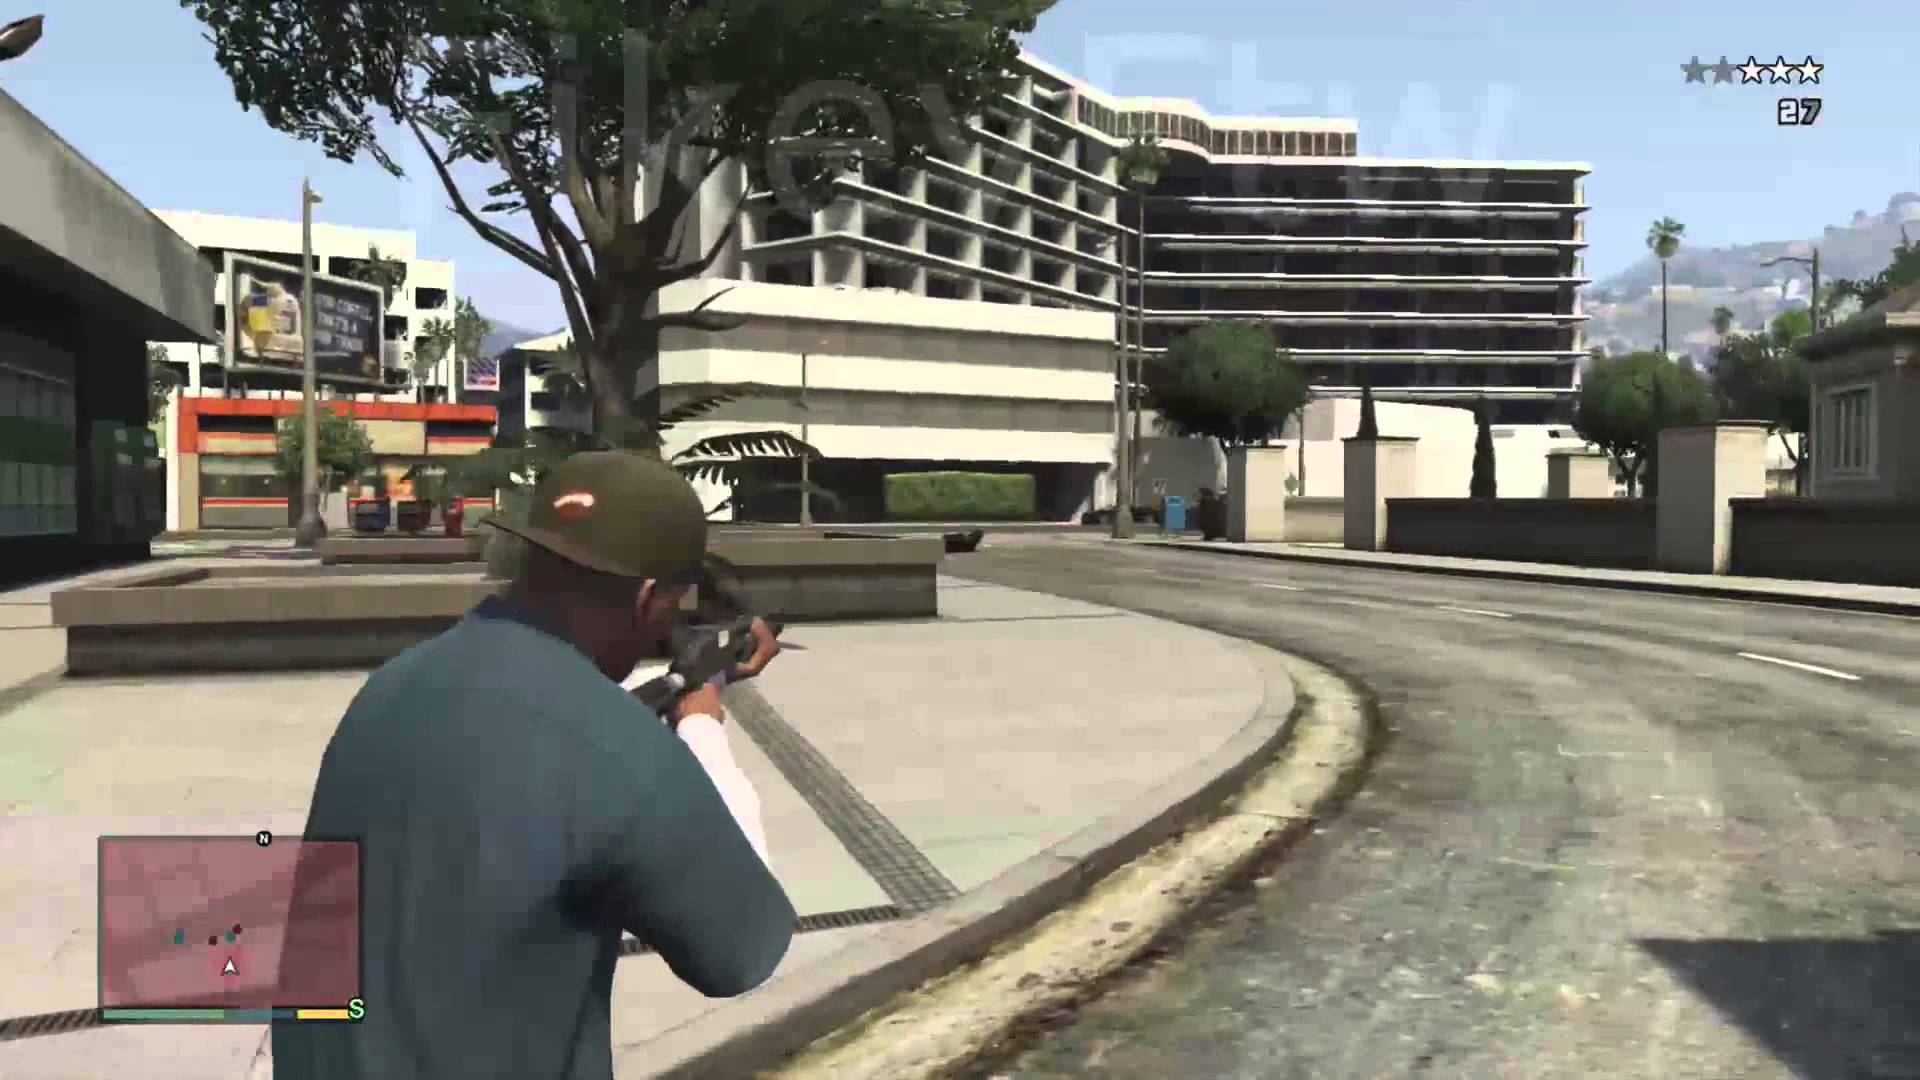 Gta 5 Playstation 3 : Grand theft auto v playstation retrogameage